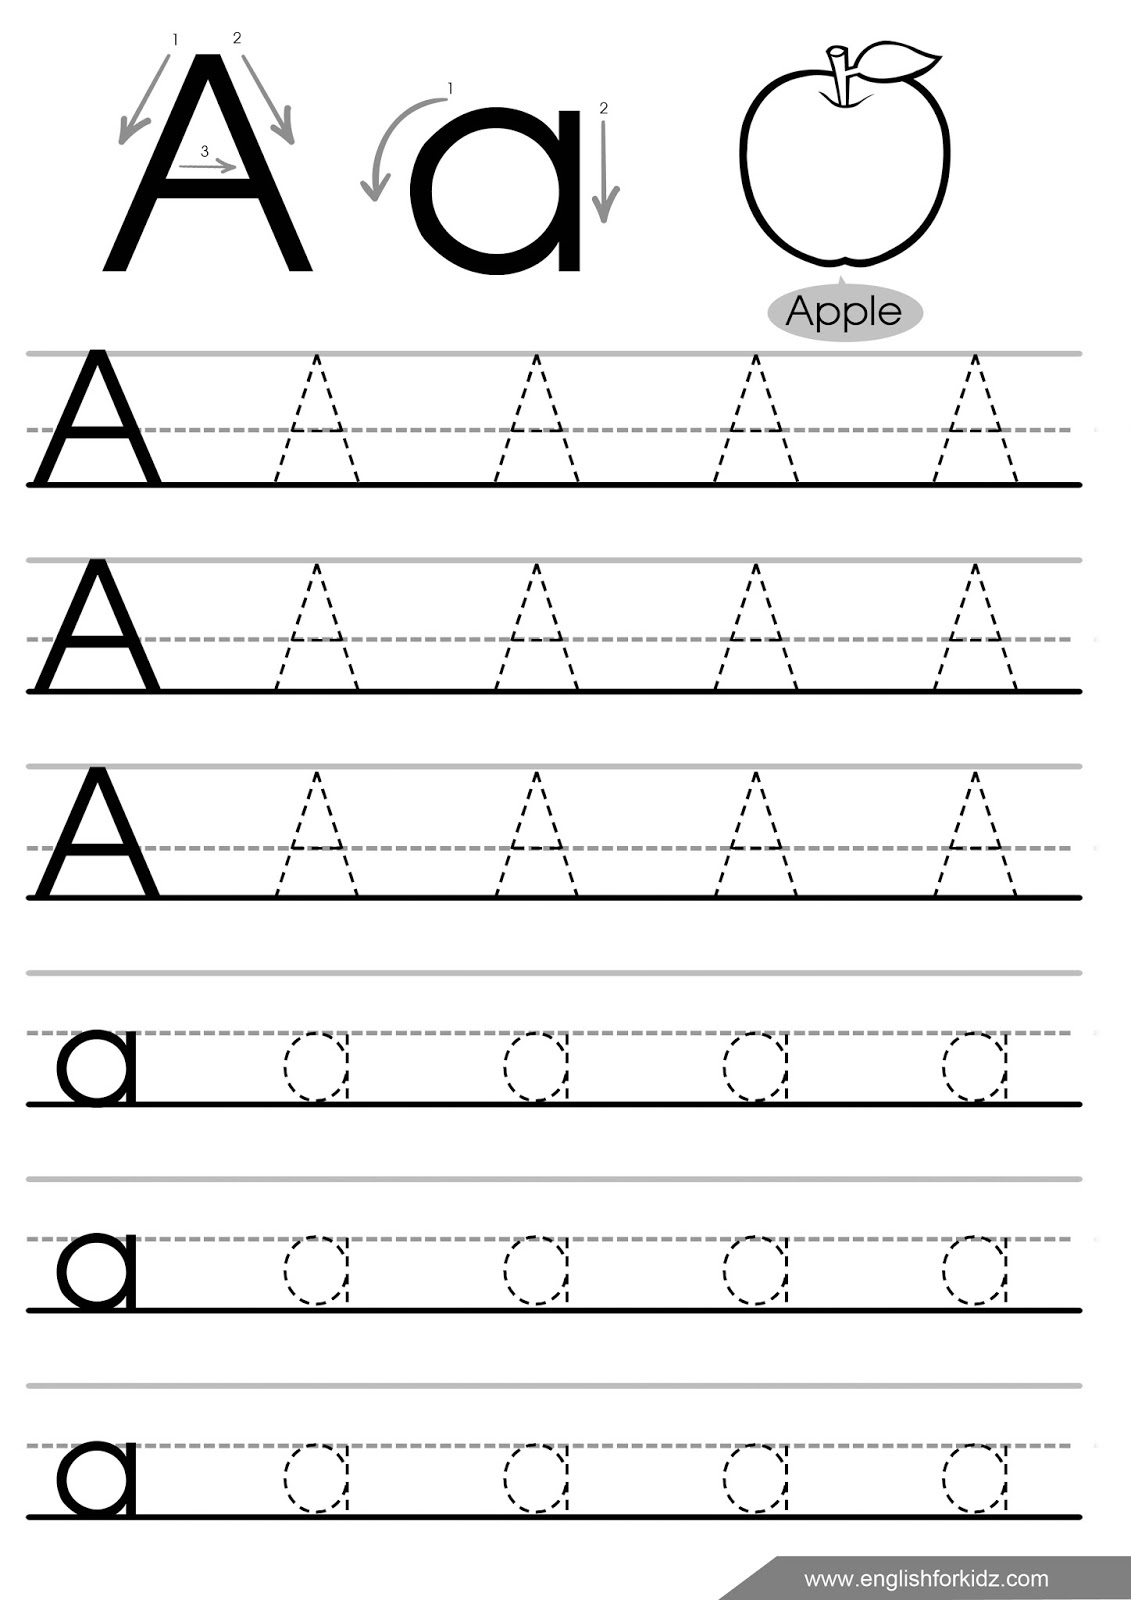 Alphabet Worksheetsos Letter Tracing Letters J Reading for Alphabet Worksheets Letter A